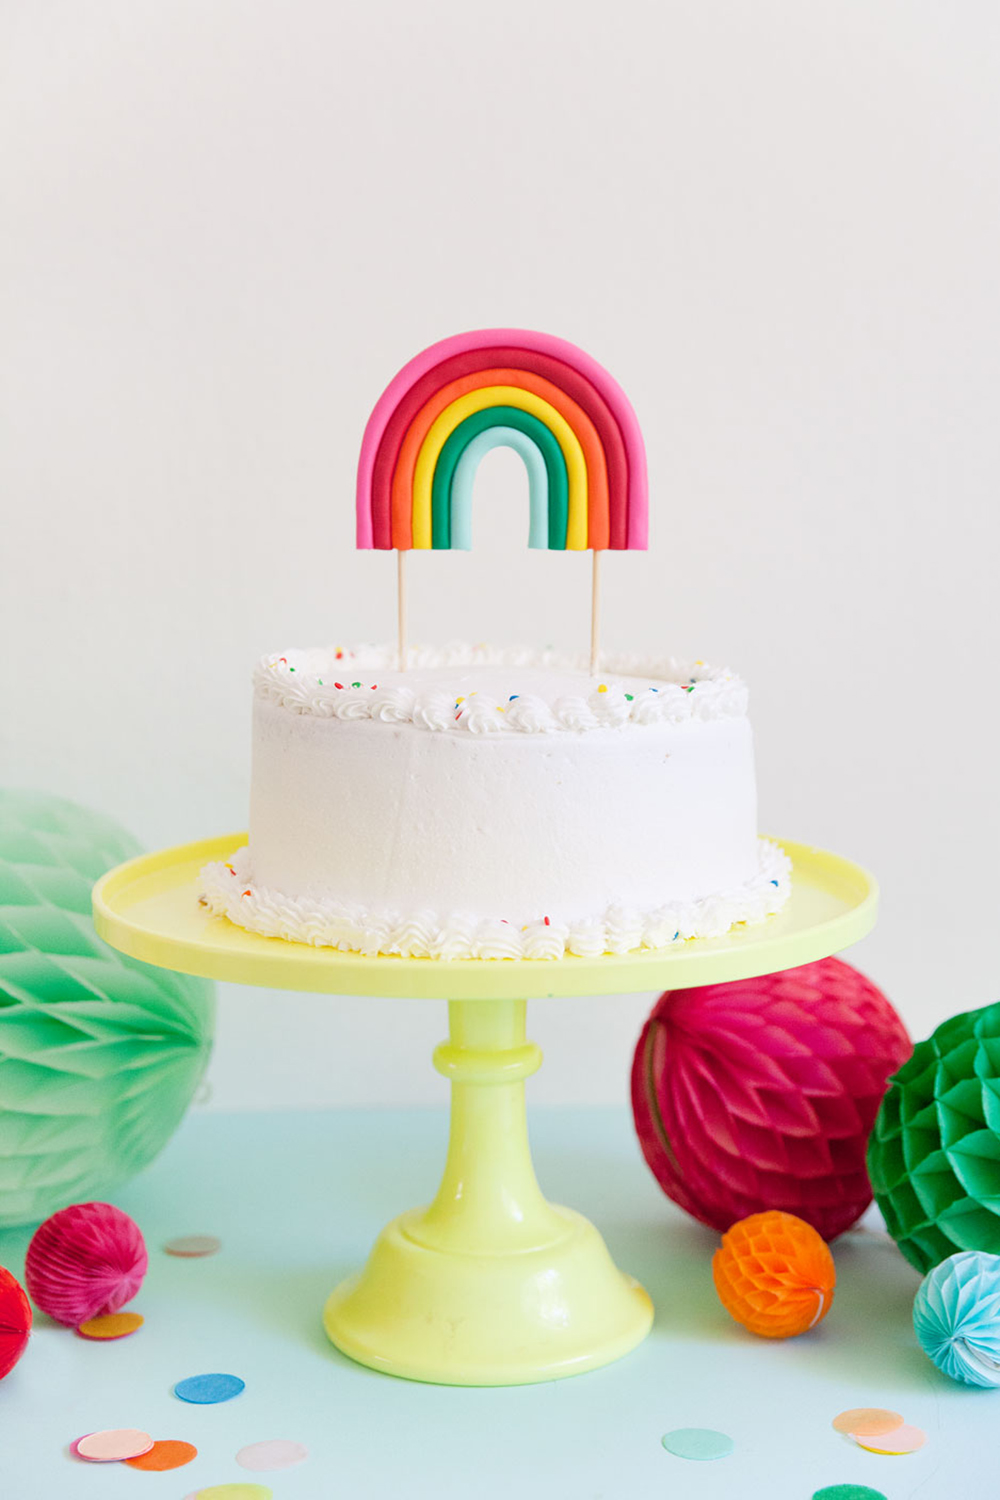 This DIY rainbow cake topper is the cutest and for sure the life of the party. Perfect for any rainbow or unicorn themed birthday parties.